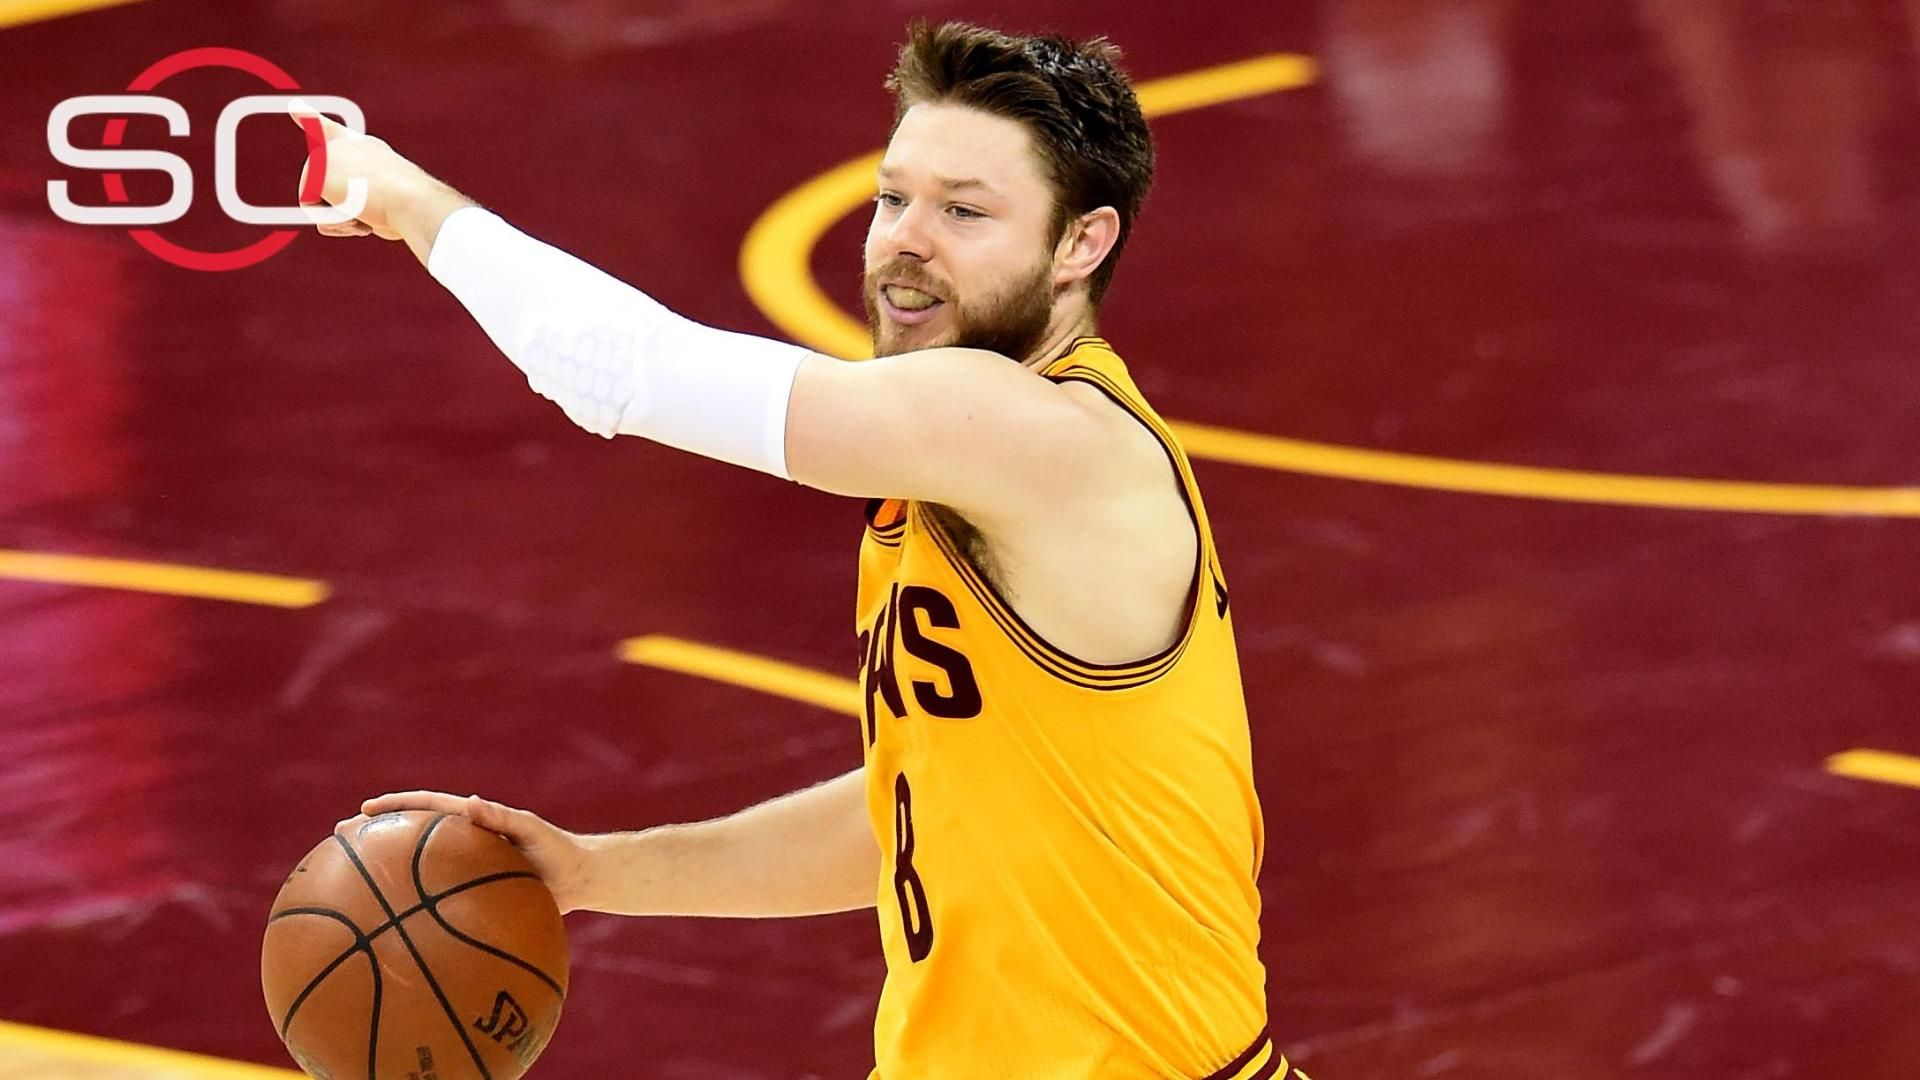 https://secure.espncdn.com/combiner/i?img=/media/motion/2015/0611/dm_150611_nba_dellavedova__int1094/dm_150611_nba_dellavedova__int1094.jpg